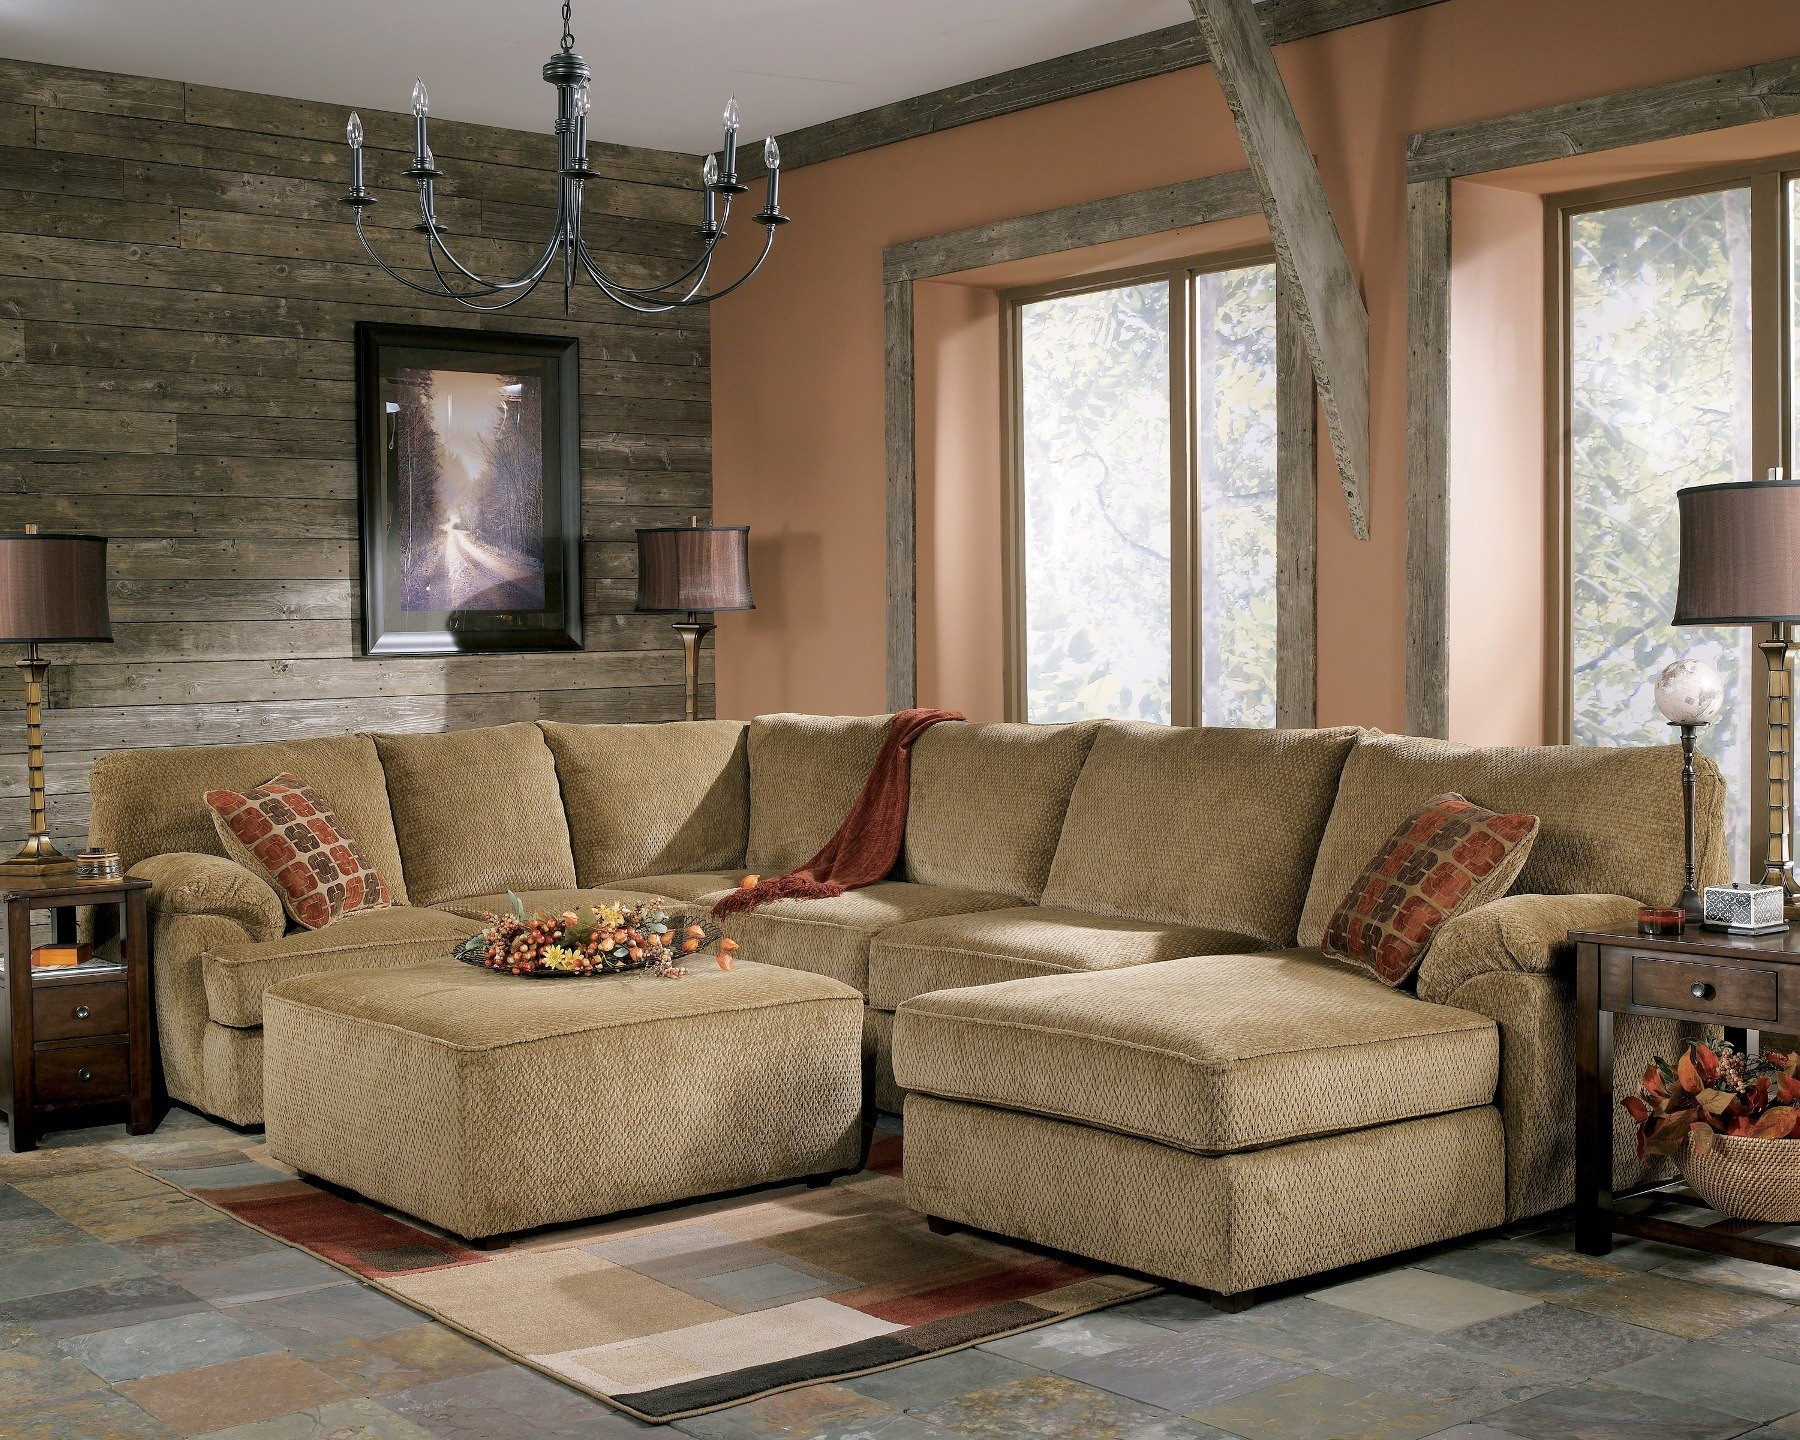 Bartlett caramel right corner sectional d8120167 for Bartlett caramel left corner chaise sectional